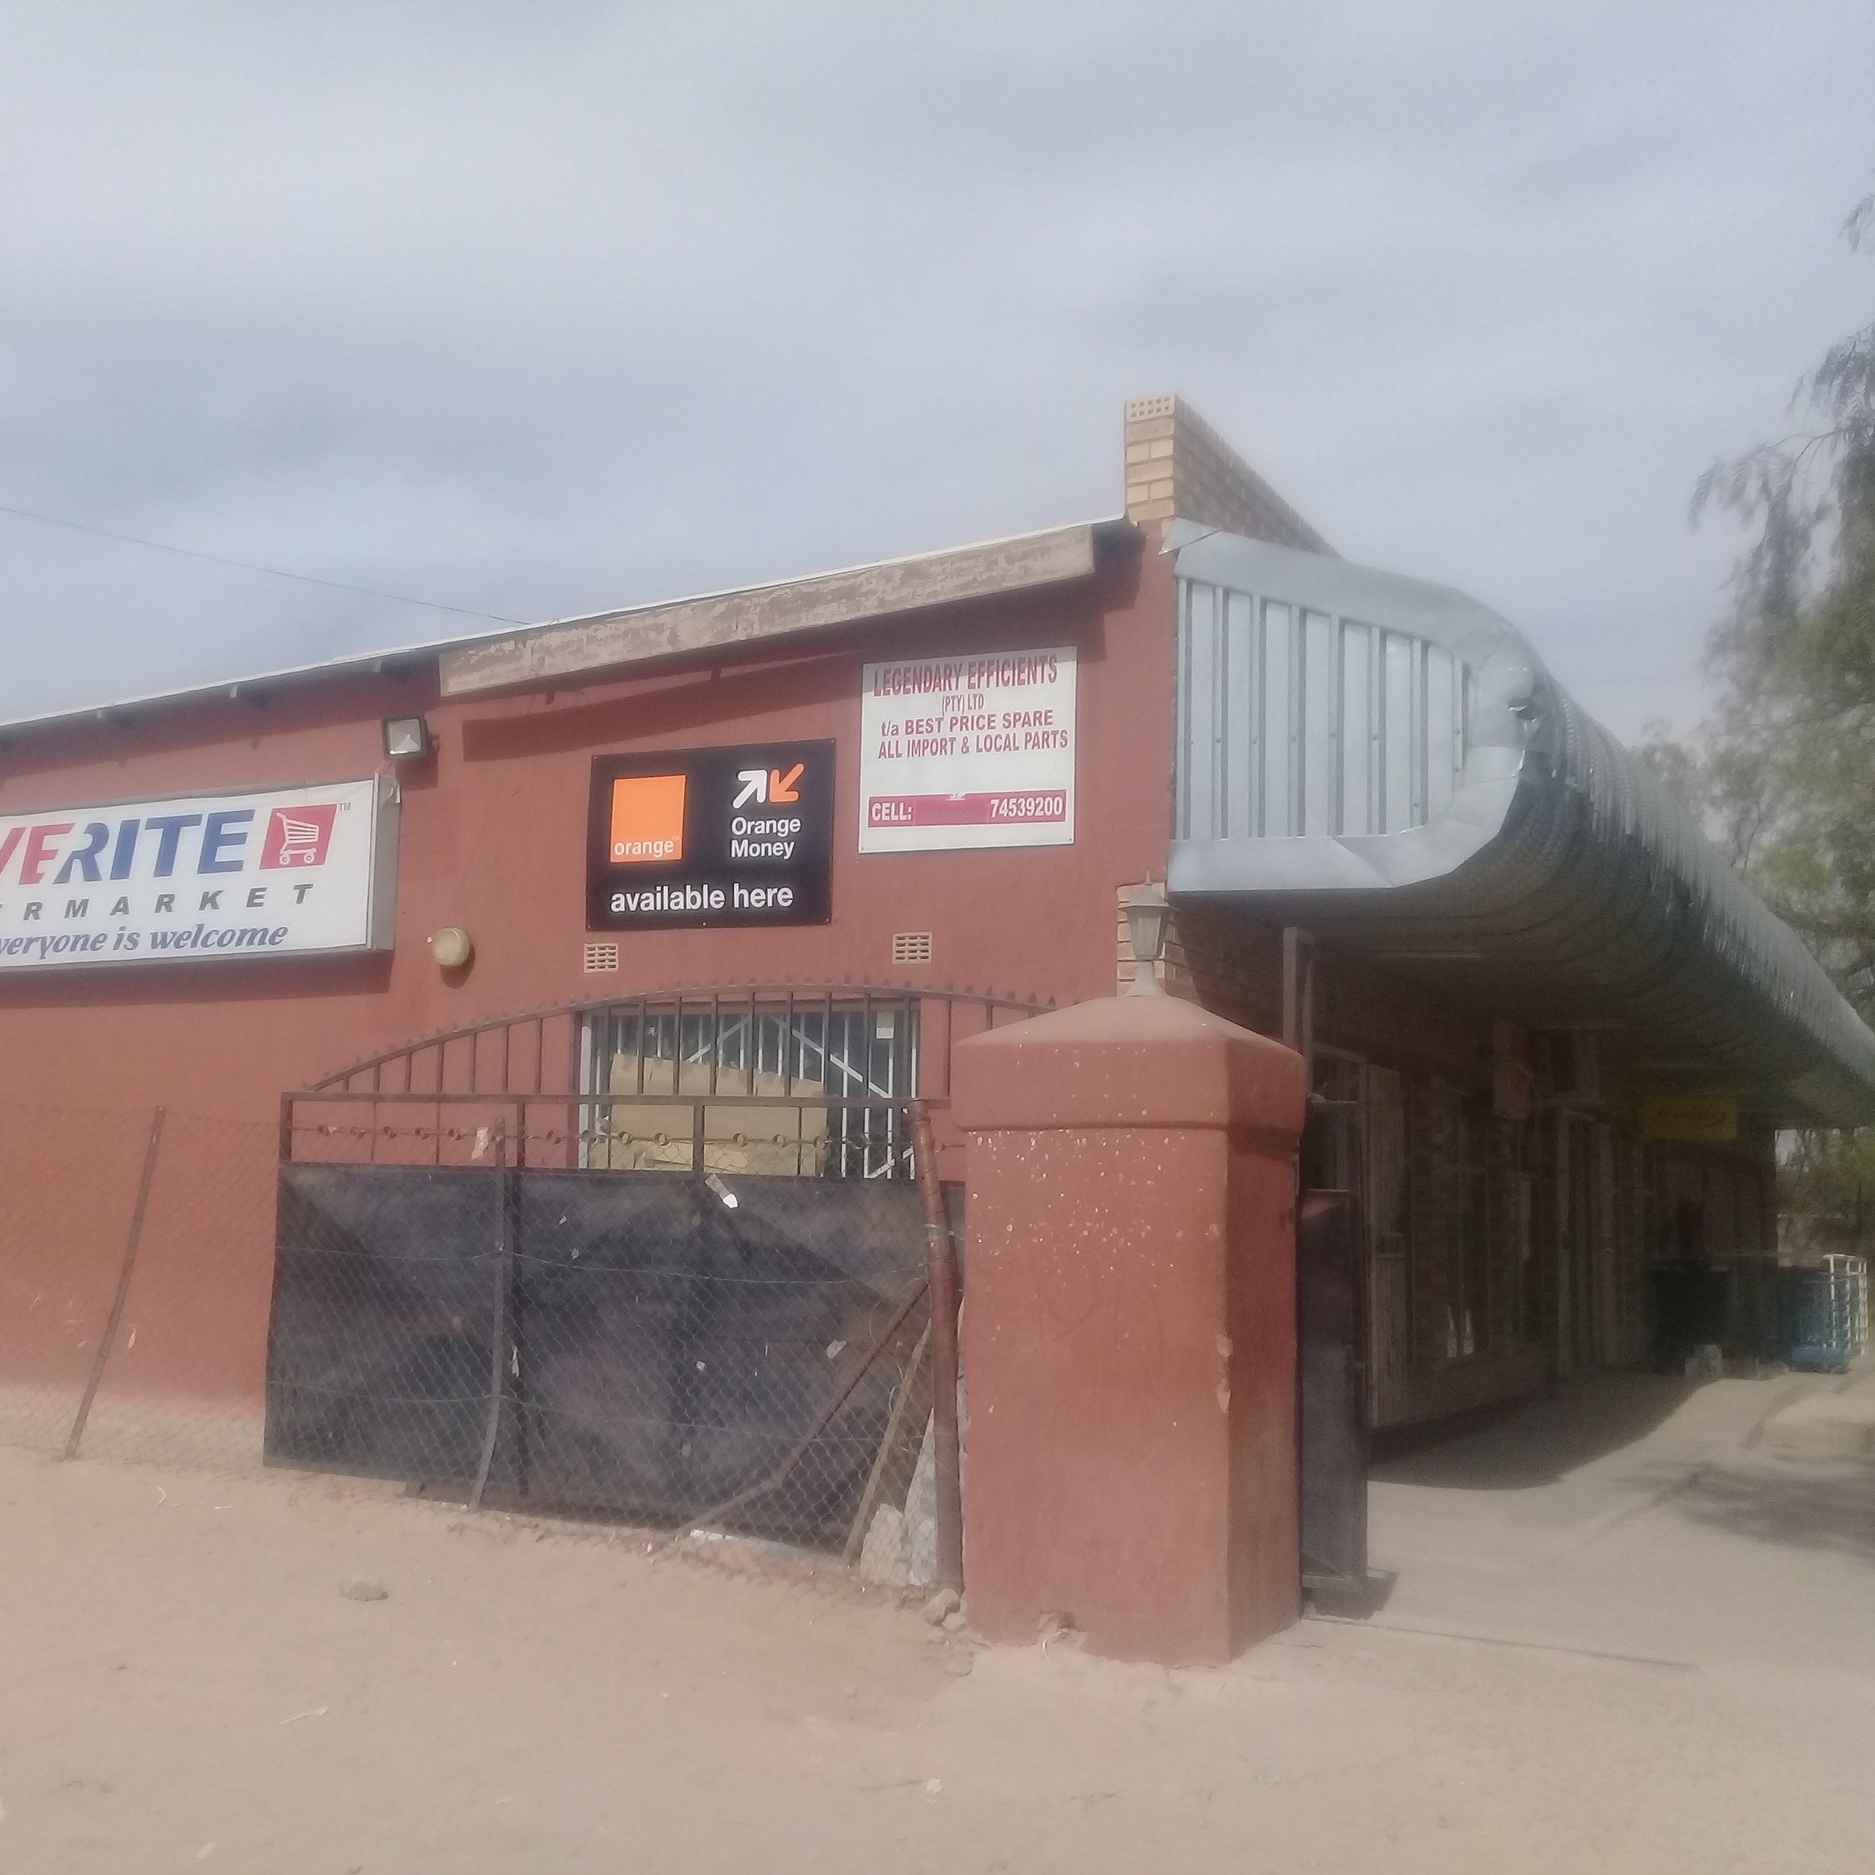 Saverite Letlhakeng - Service Description∙ food , butchery, restaurant, bar and bakeryOpening Hours:Monday - Friday: 07:00-21:00Saturday: 07:00-21:00Sunday: -Directions:Busy Bee ComplexModibo WardContact: Kably Motseonageng📞 (+267) 71 51 73 11✎